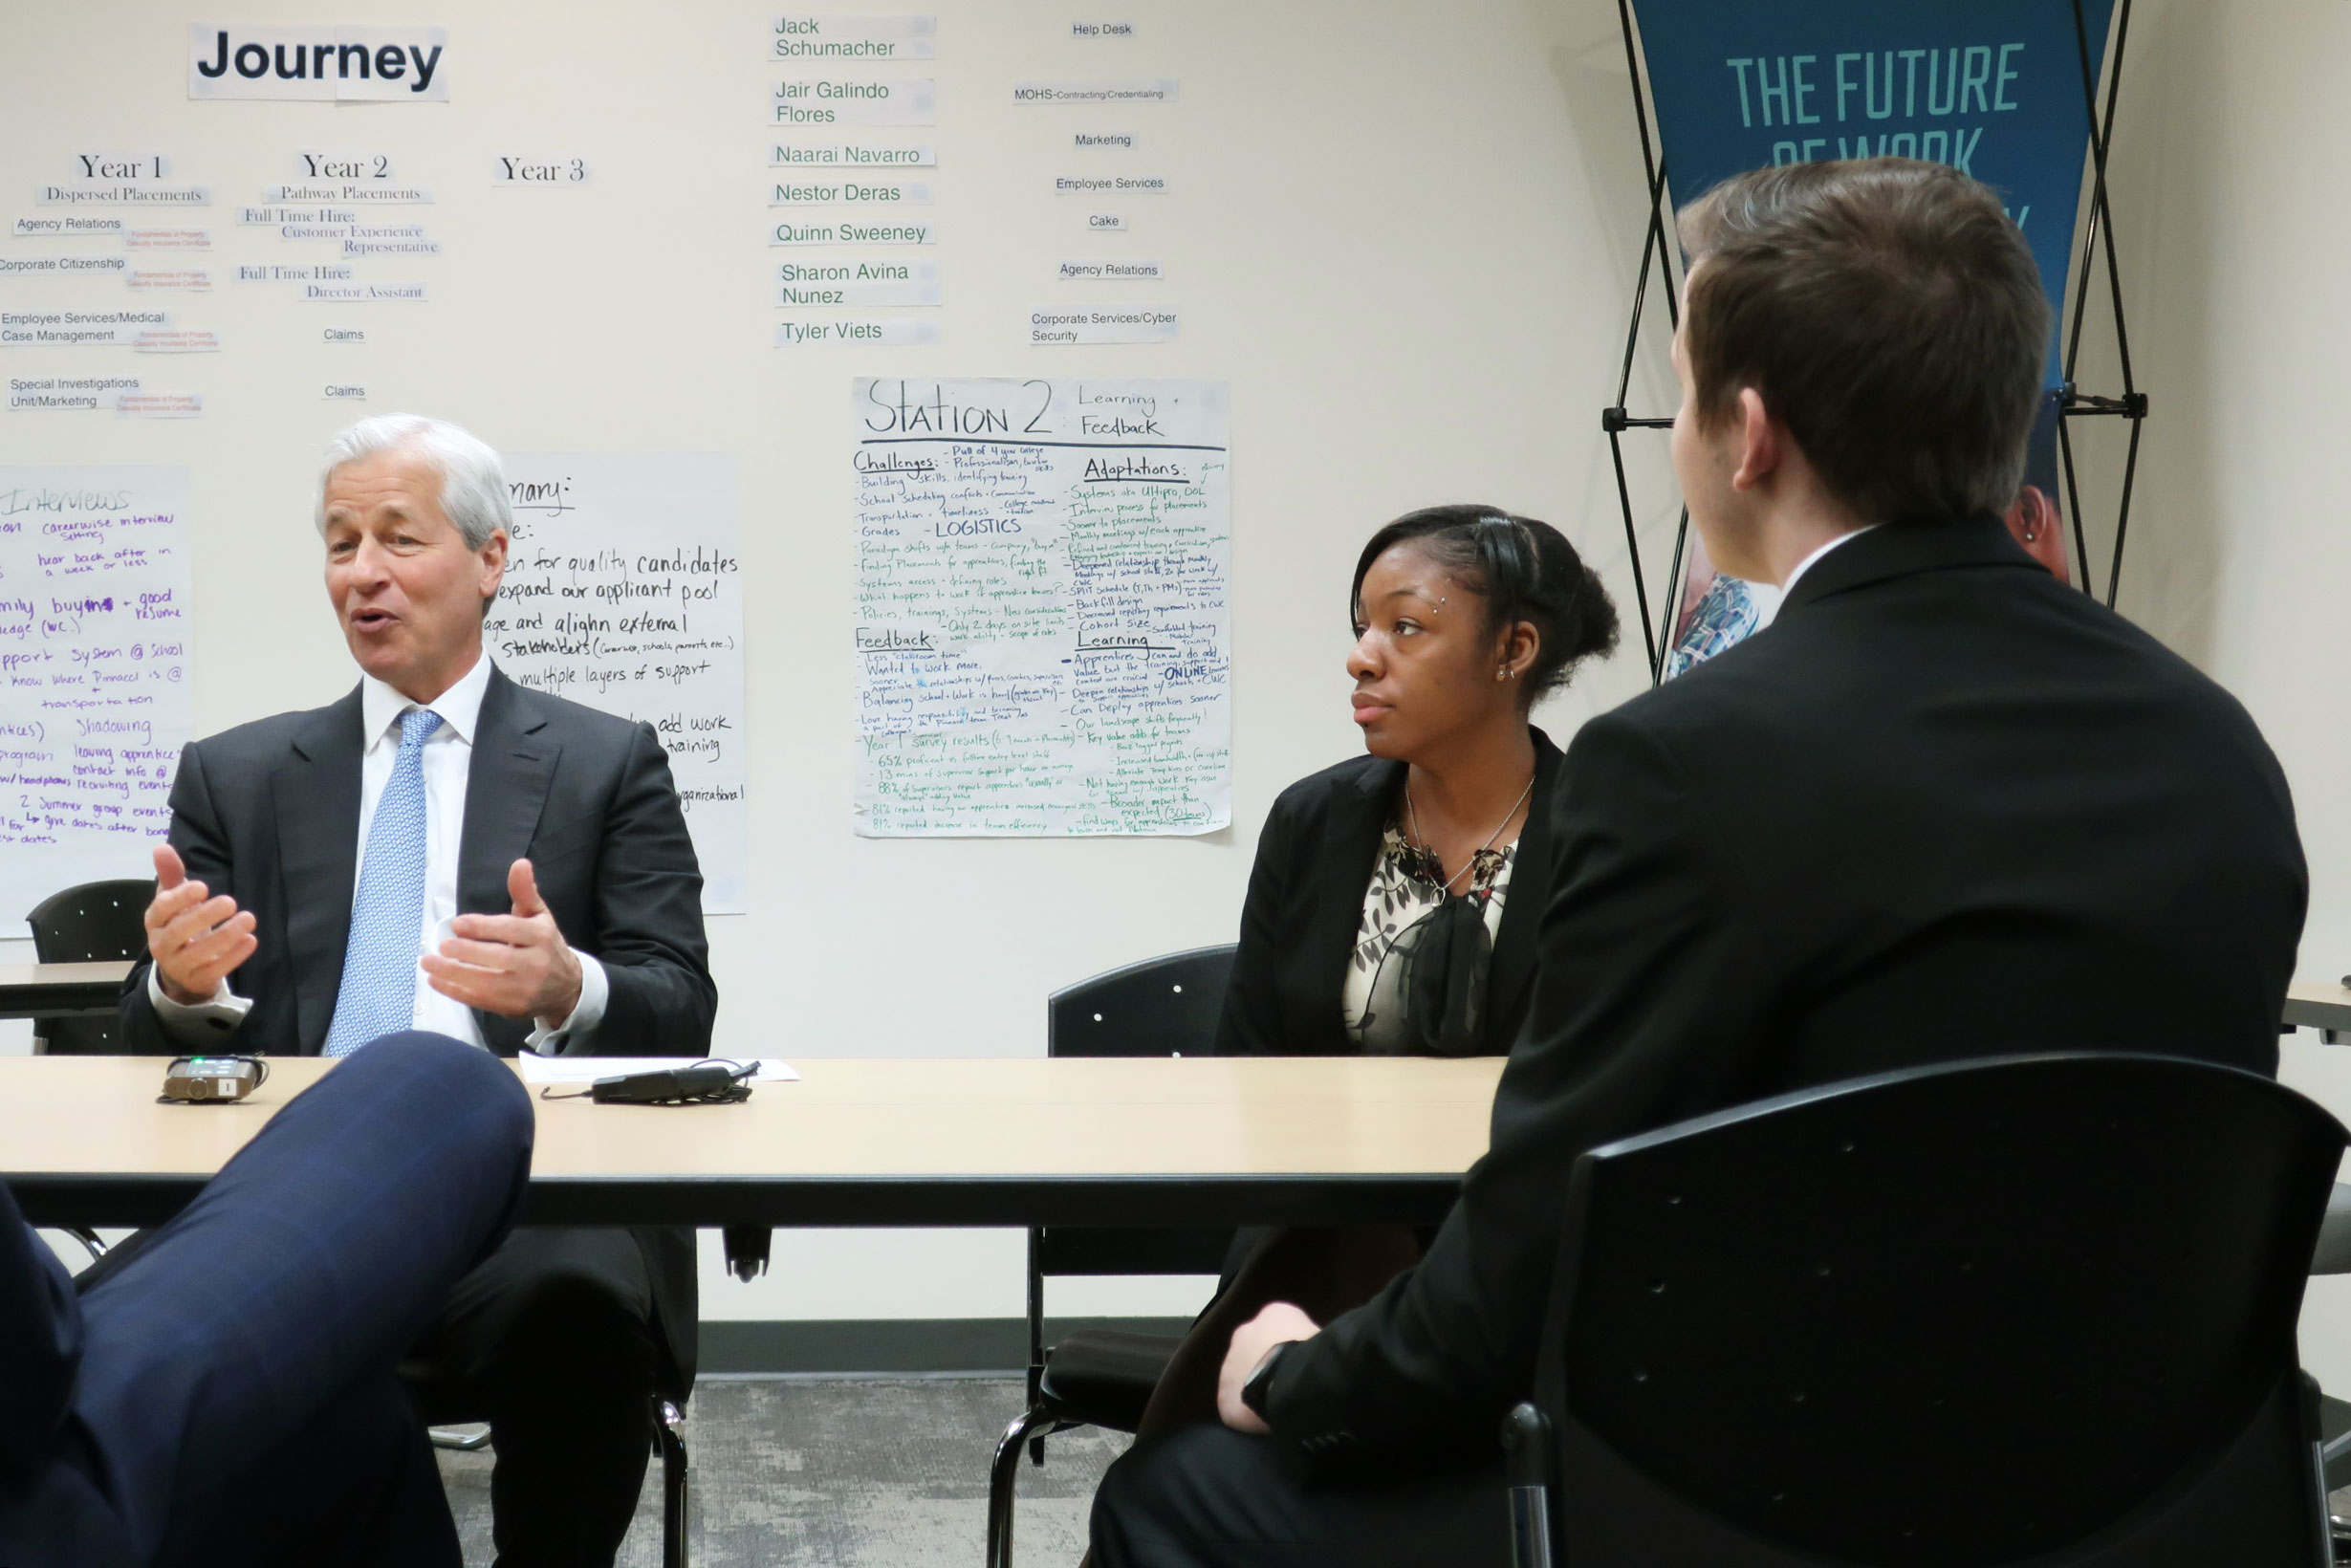 JP Morgan Chase chairman and CEO Jamie Dimon talking to Pinnacol Assurance apprentices.